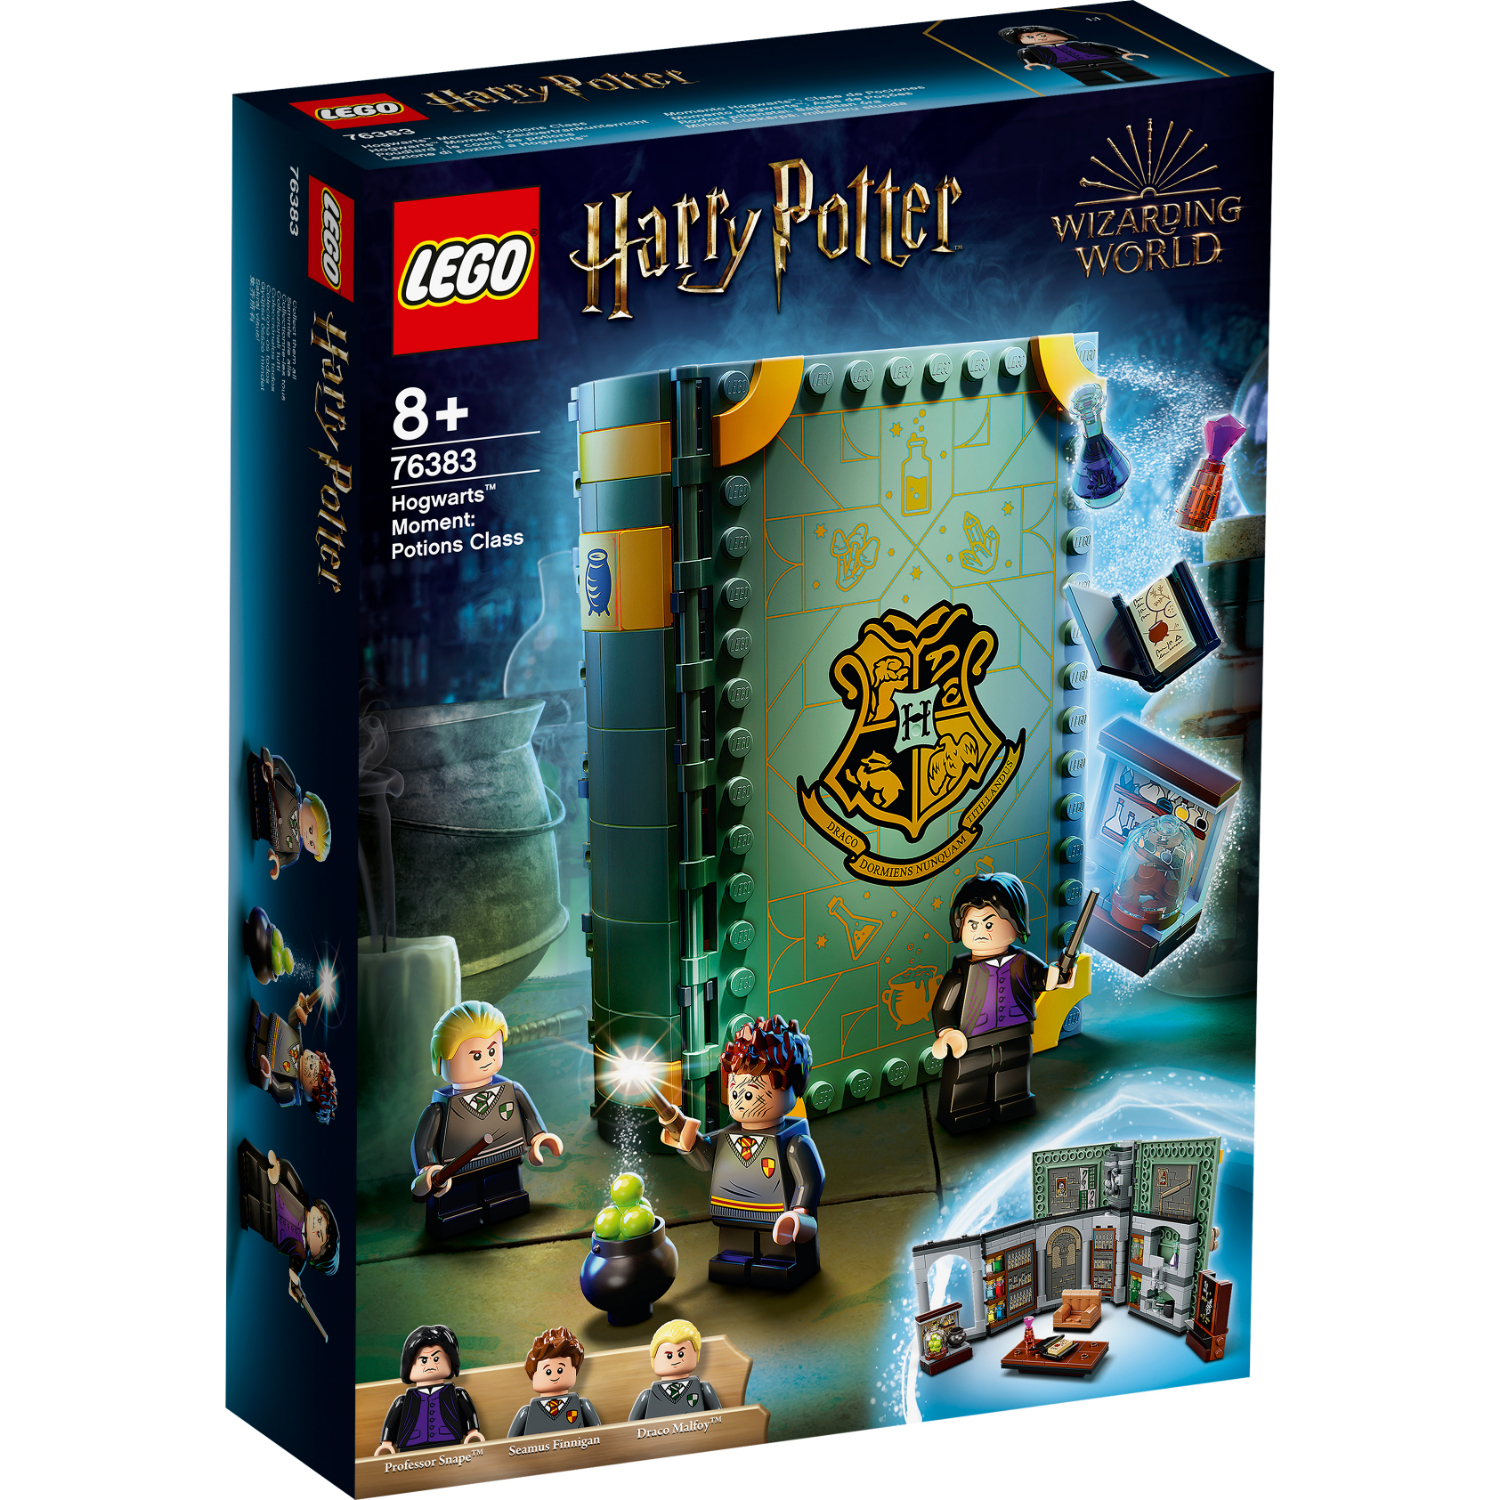 LEGO Harry Potter 76383